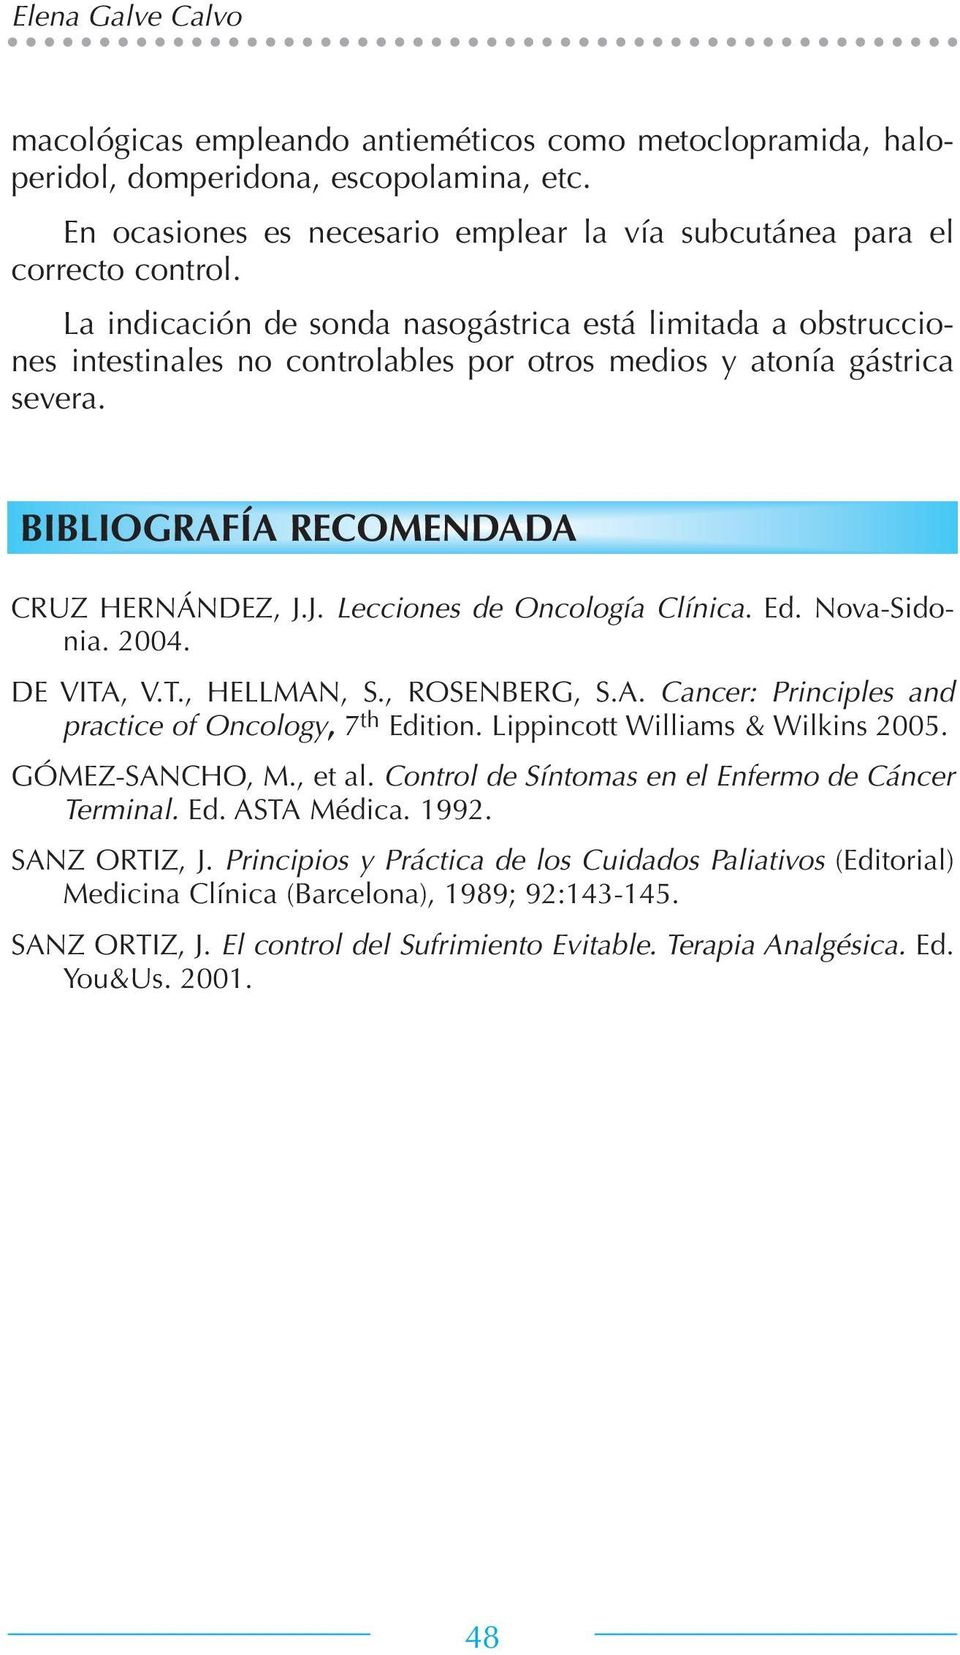 J. Lecciones de Oncología Clínica. Ed. Nova-Sidonia. 2004. DE VITA, V.T., HELLMAN, S., ROSENBERG, S.A. Cancer: Principles and practice of Oncology, 7 th Edition. Lippincott Williams & Wilkins 2005.